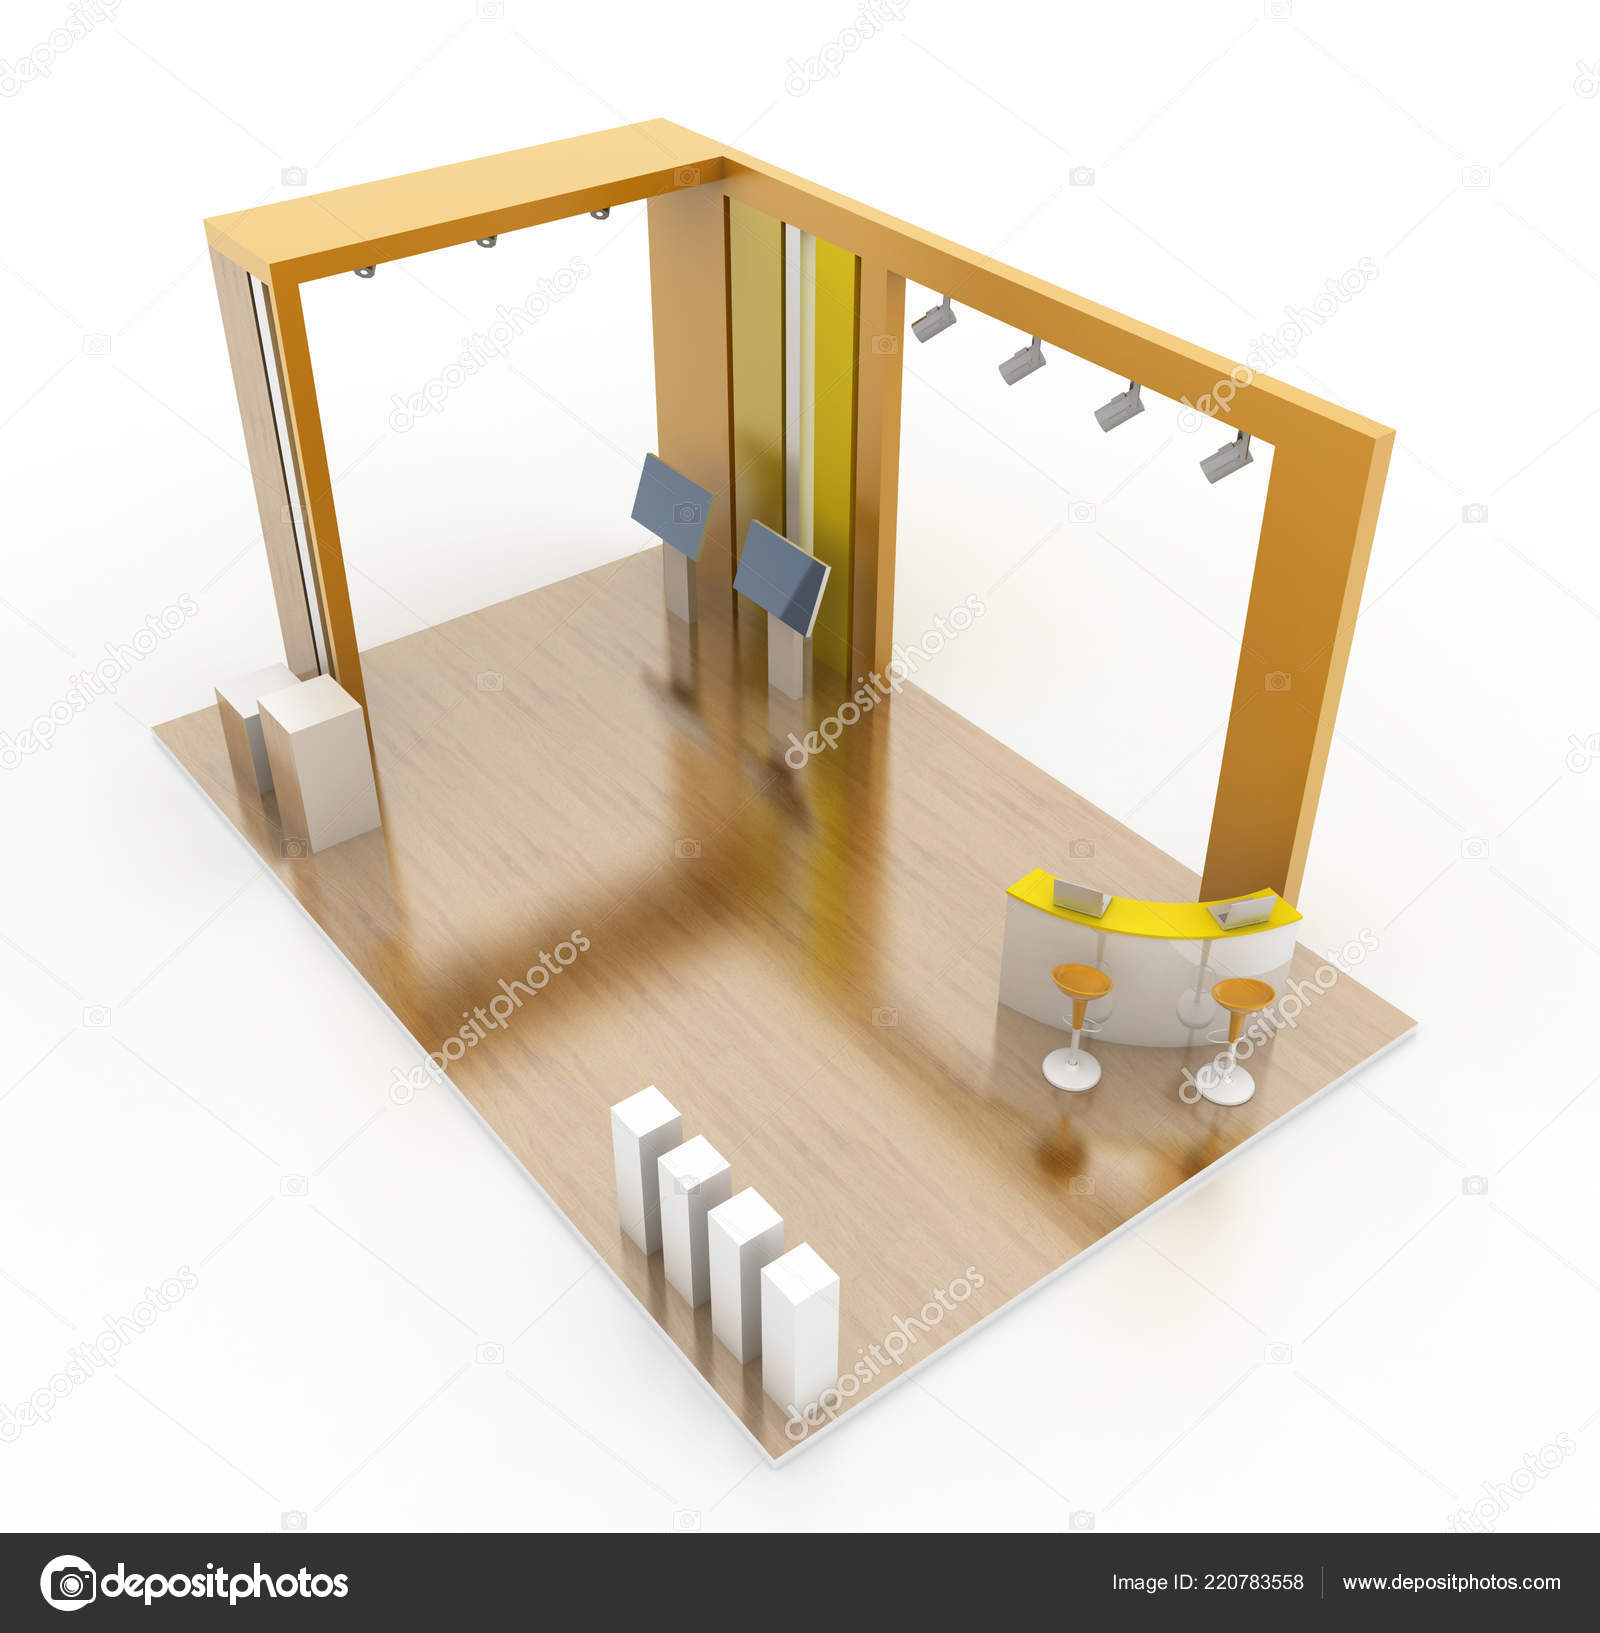 Exhibition Stand Interiors : Wooden exhibition stand interior original rendering models u stock